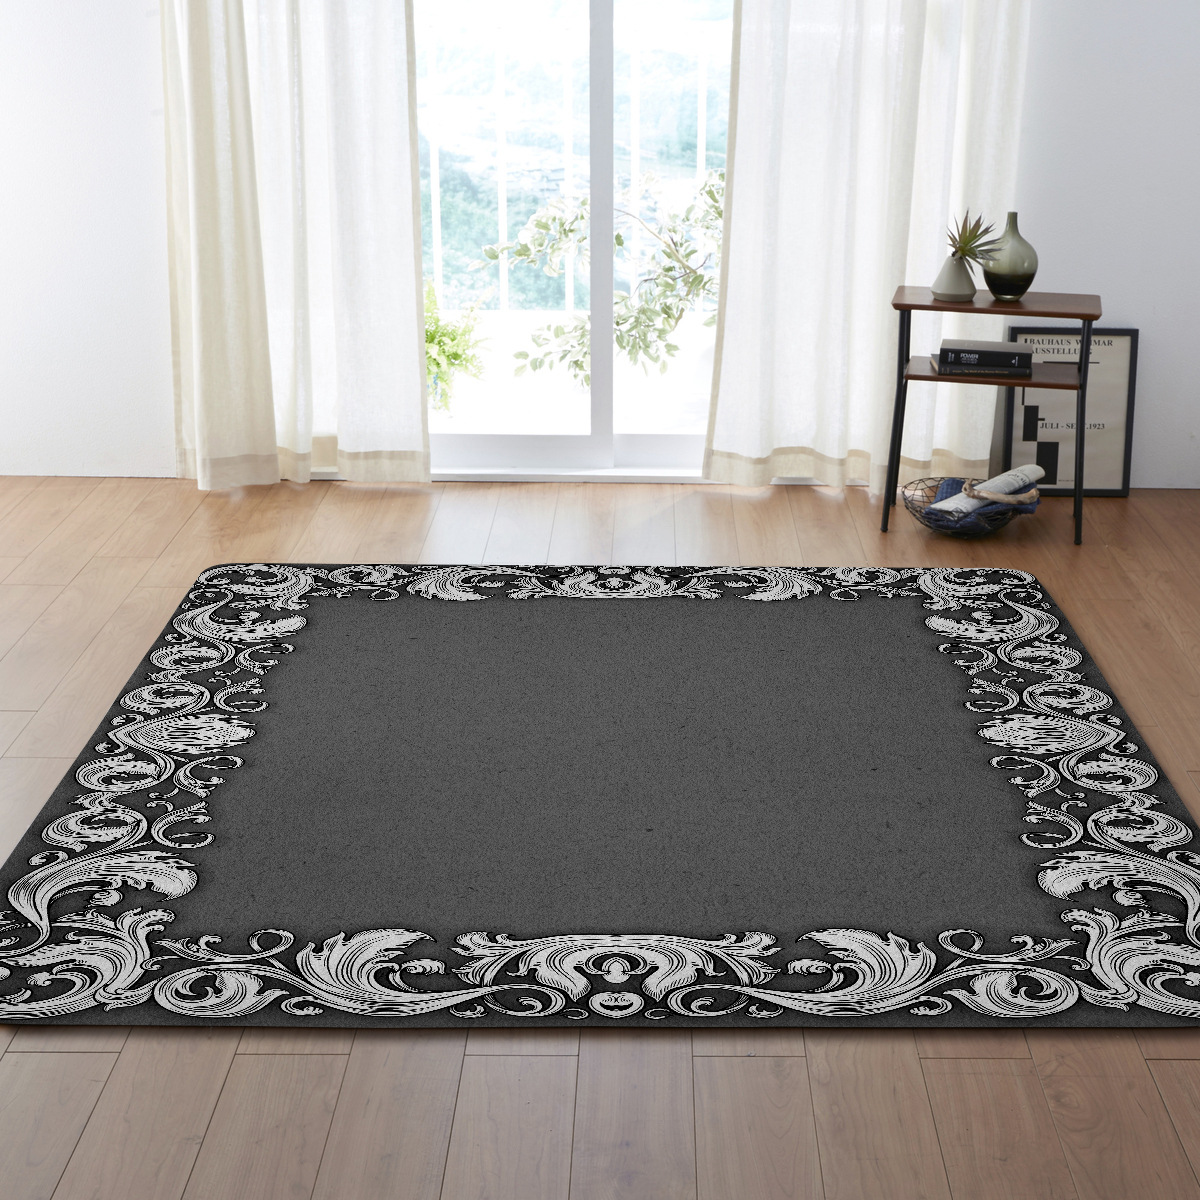 T chambre tapis 200*150cm tapis pour la maison salon tapis de sol Simple couverture grand lavage mécanique Rectangle canapé tapis